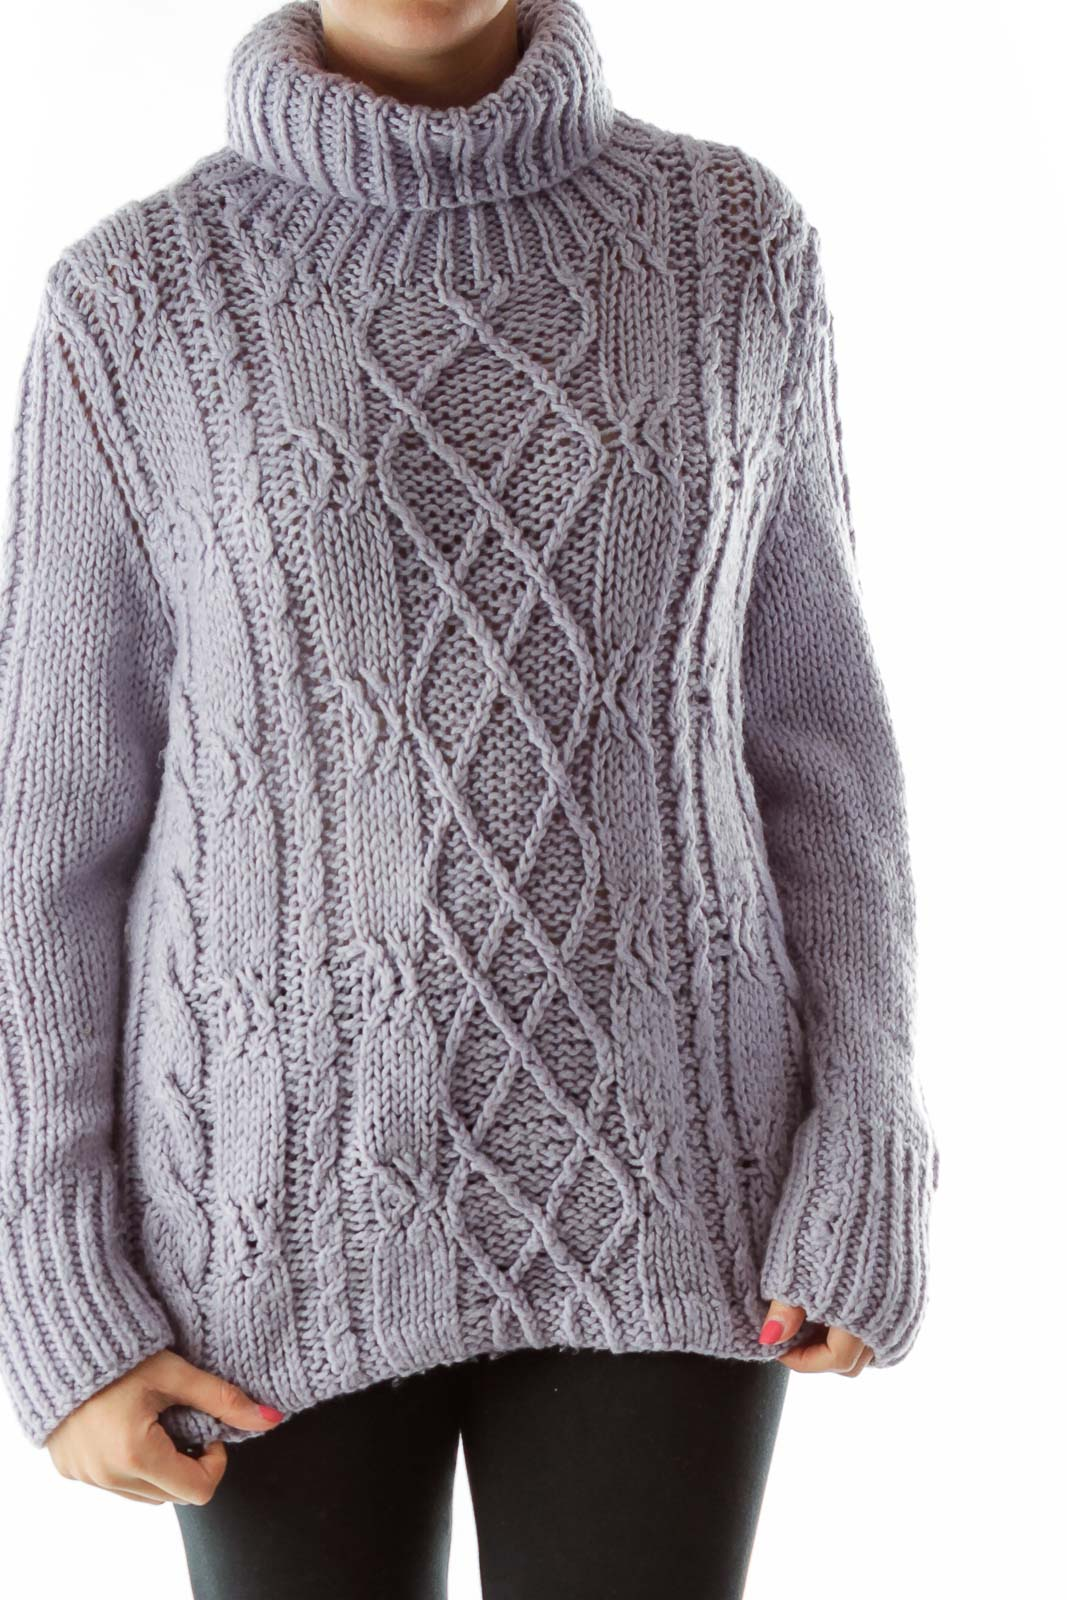 Lavender TurtleNeck Cable-Knit Sweater